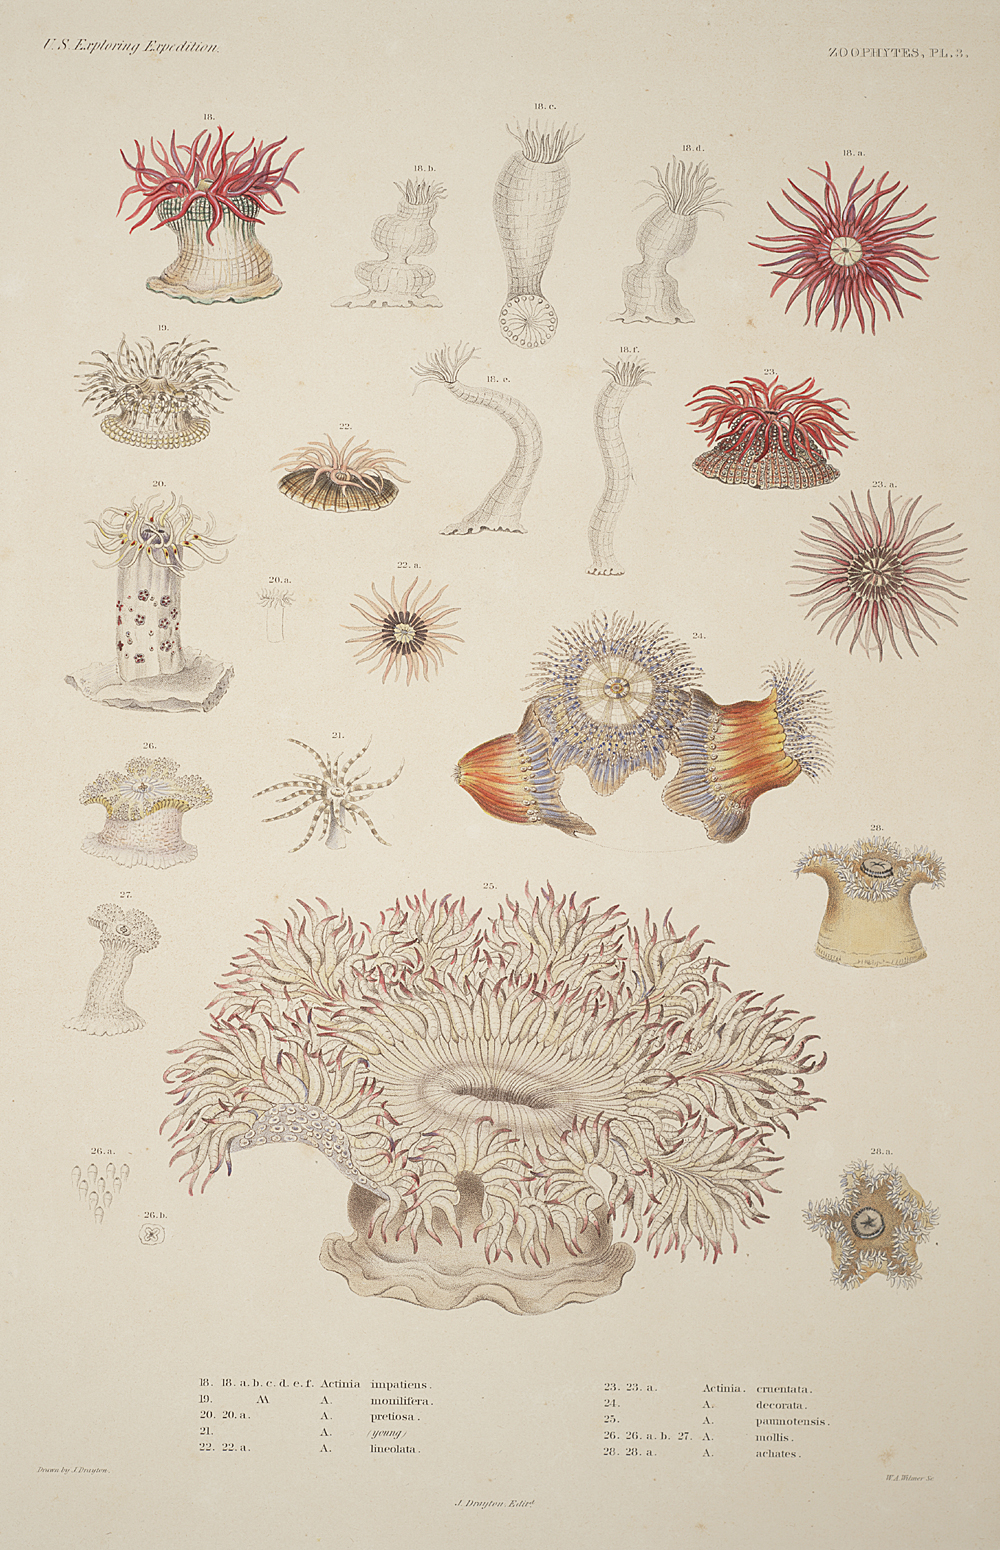 Zoophytes, Plate 3,  Image number:sil19-09-023b